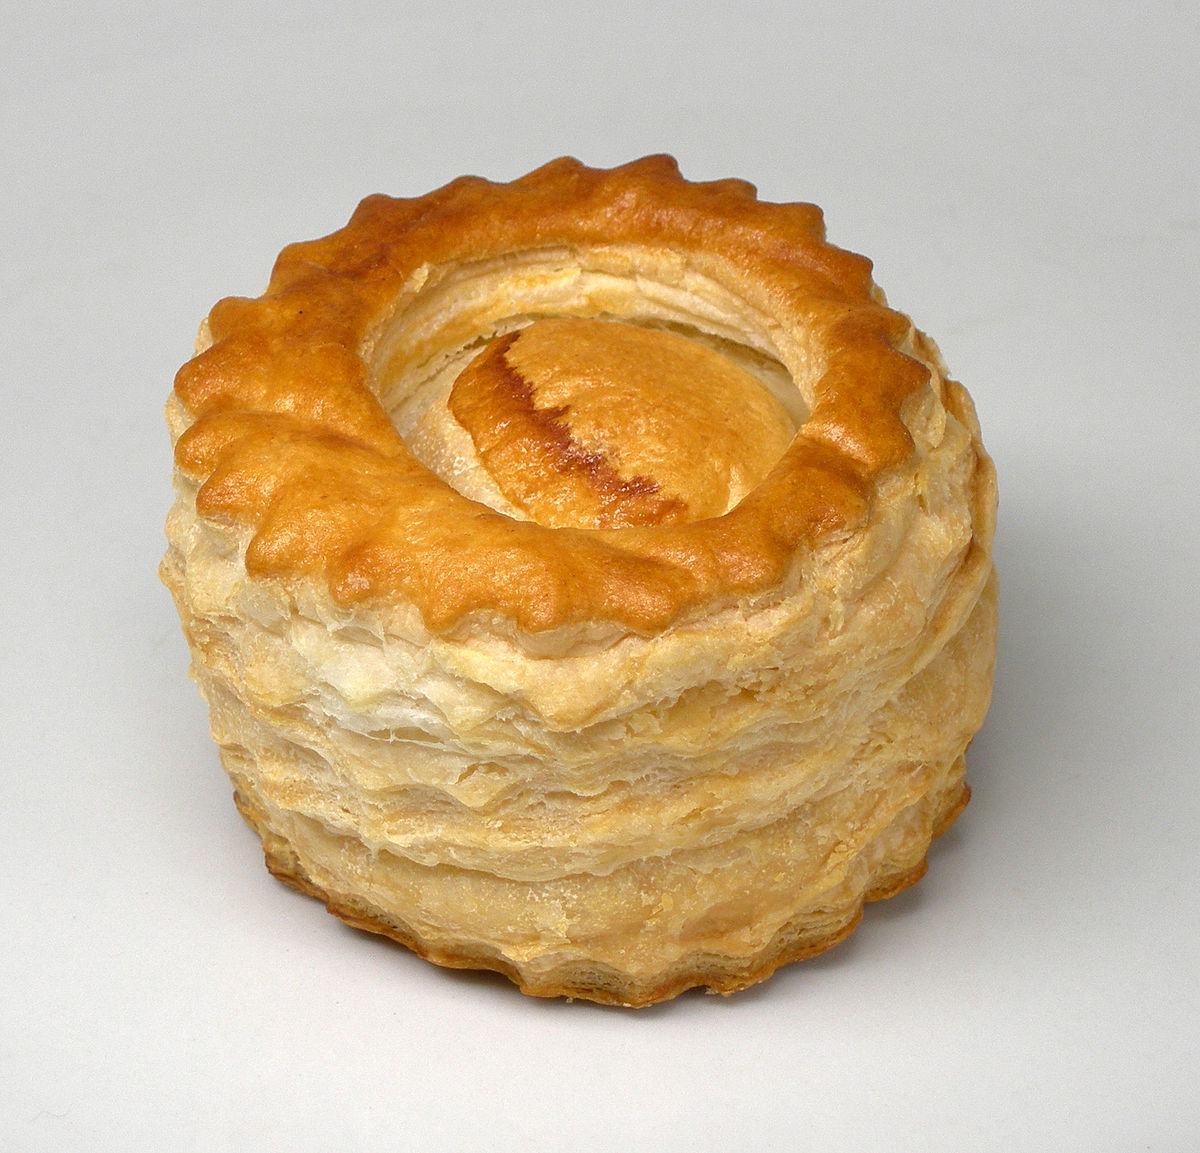 Vol au vent wikipedia wolna encyklopedia for Canape fillings